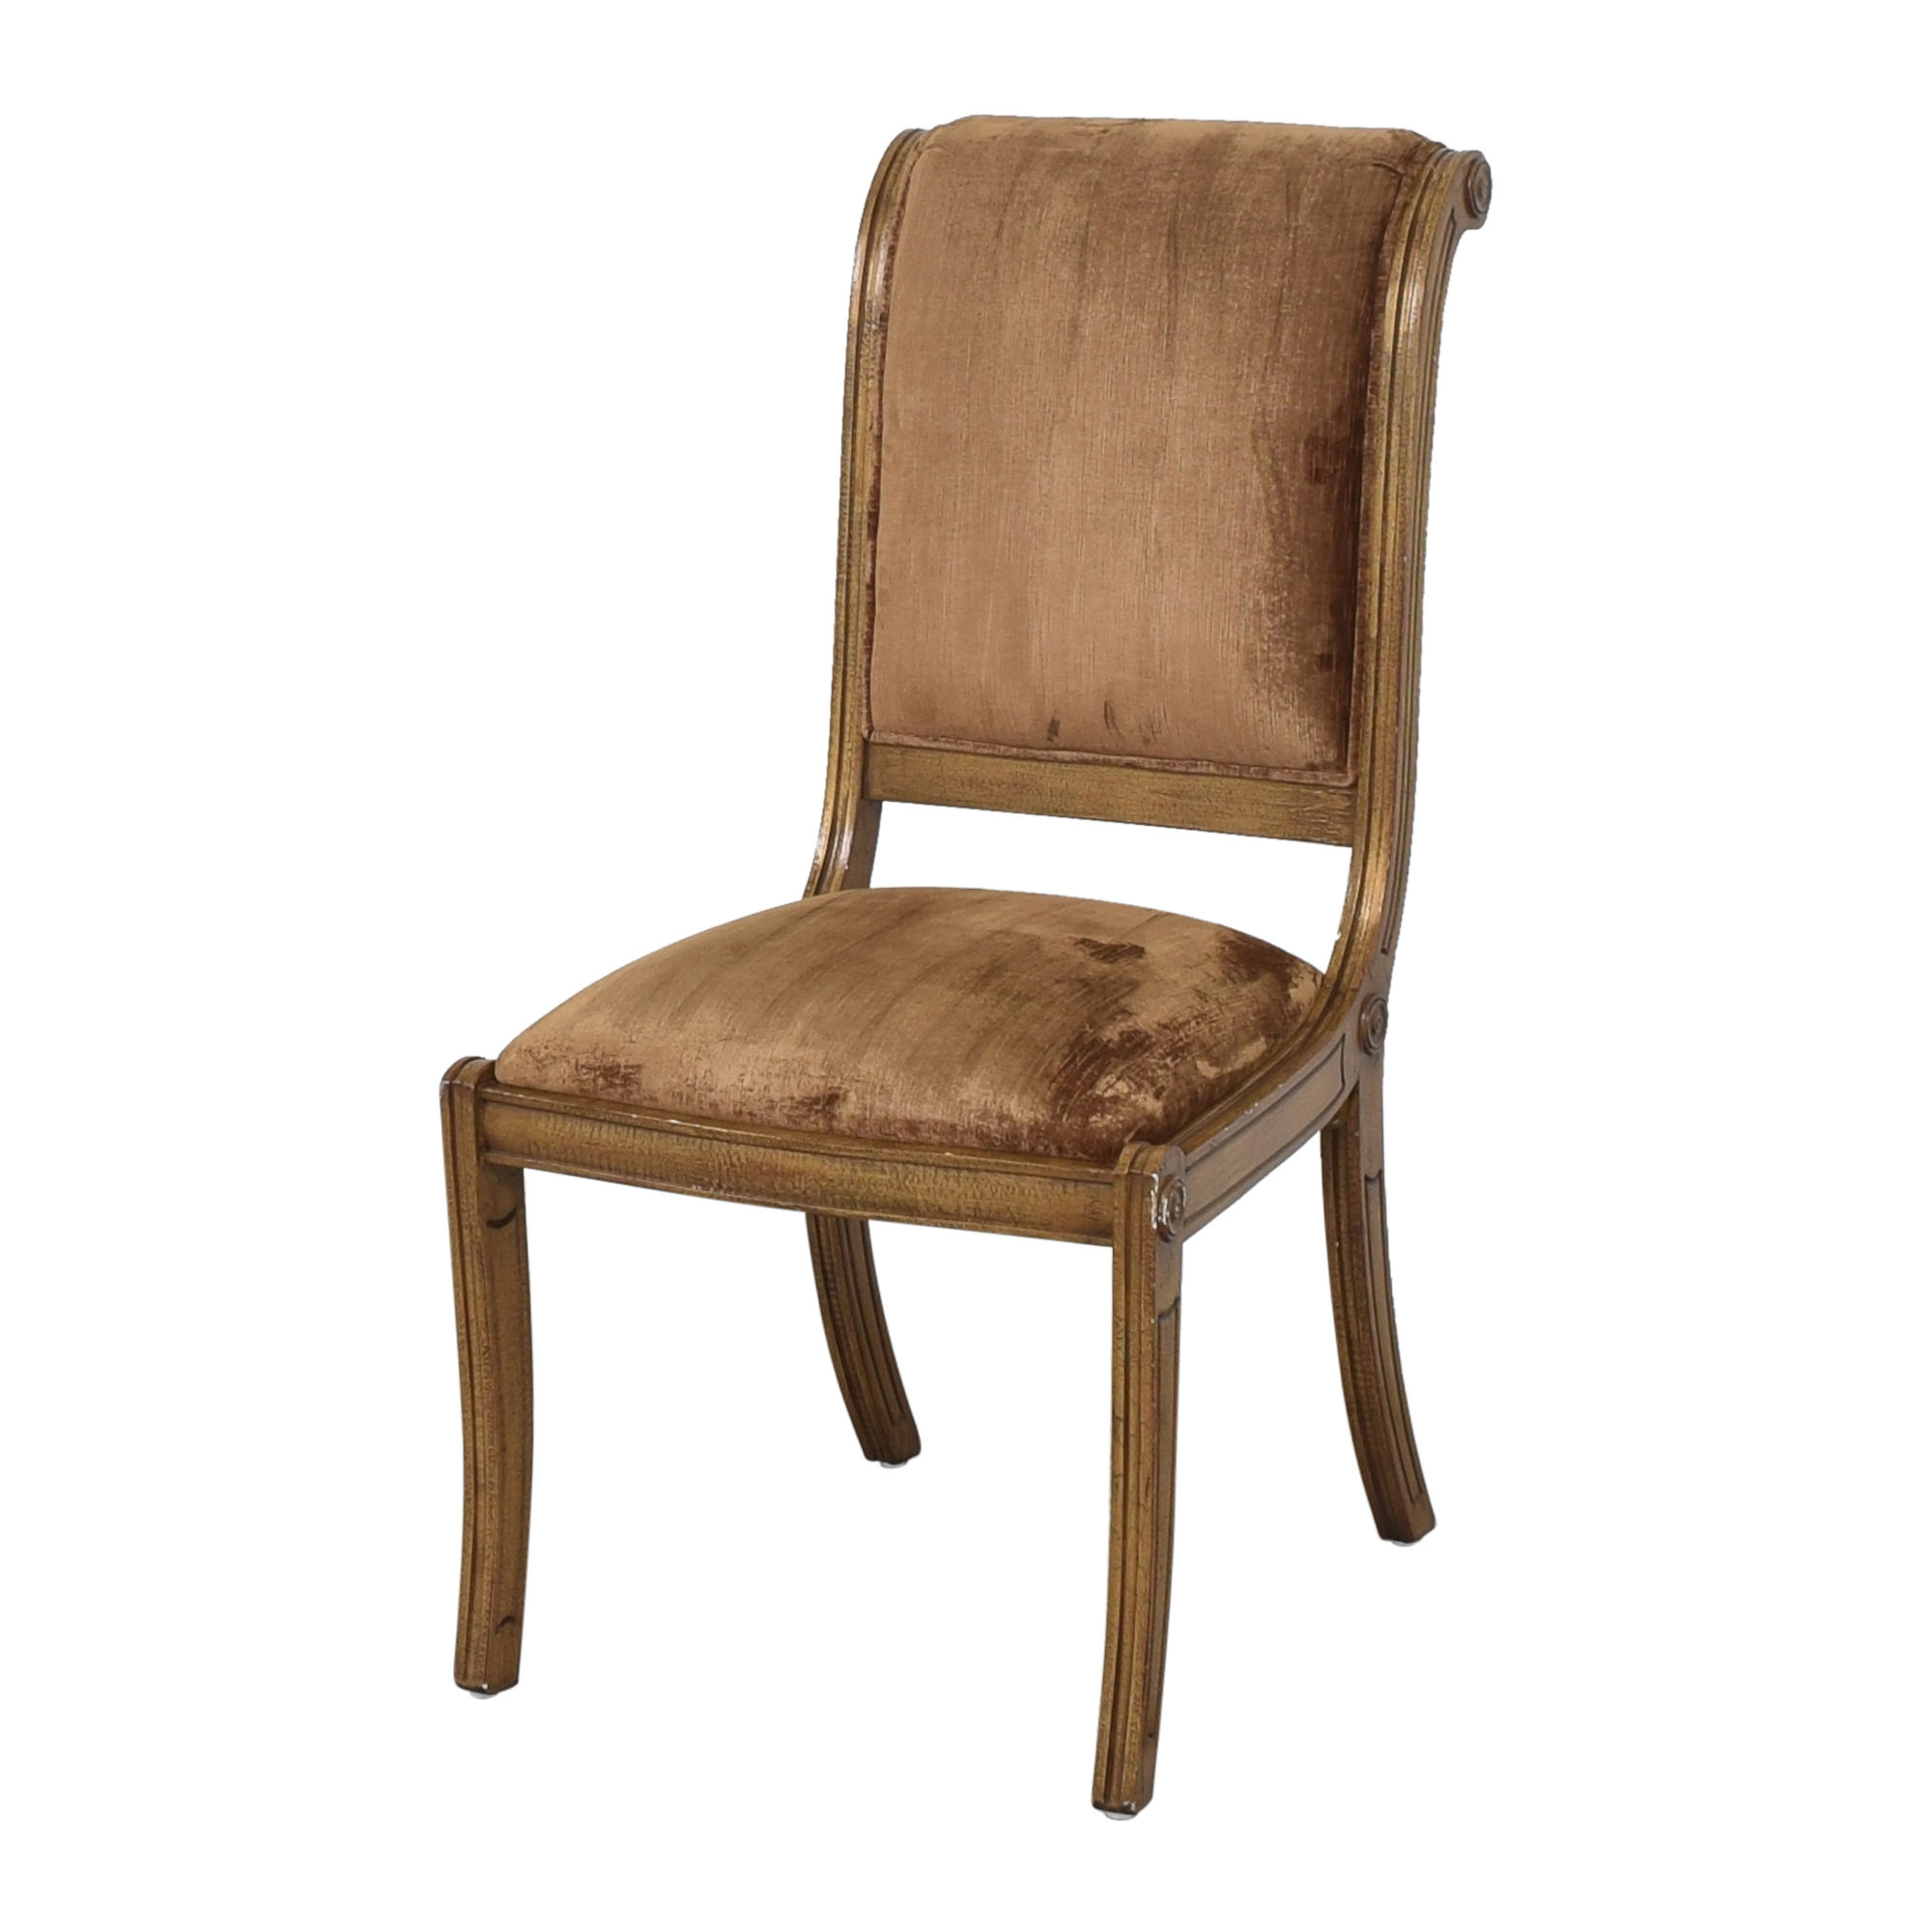 Robert Allen Rodeo Side Dining Chairs / Chairs